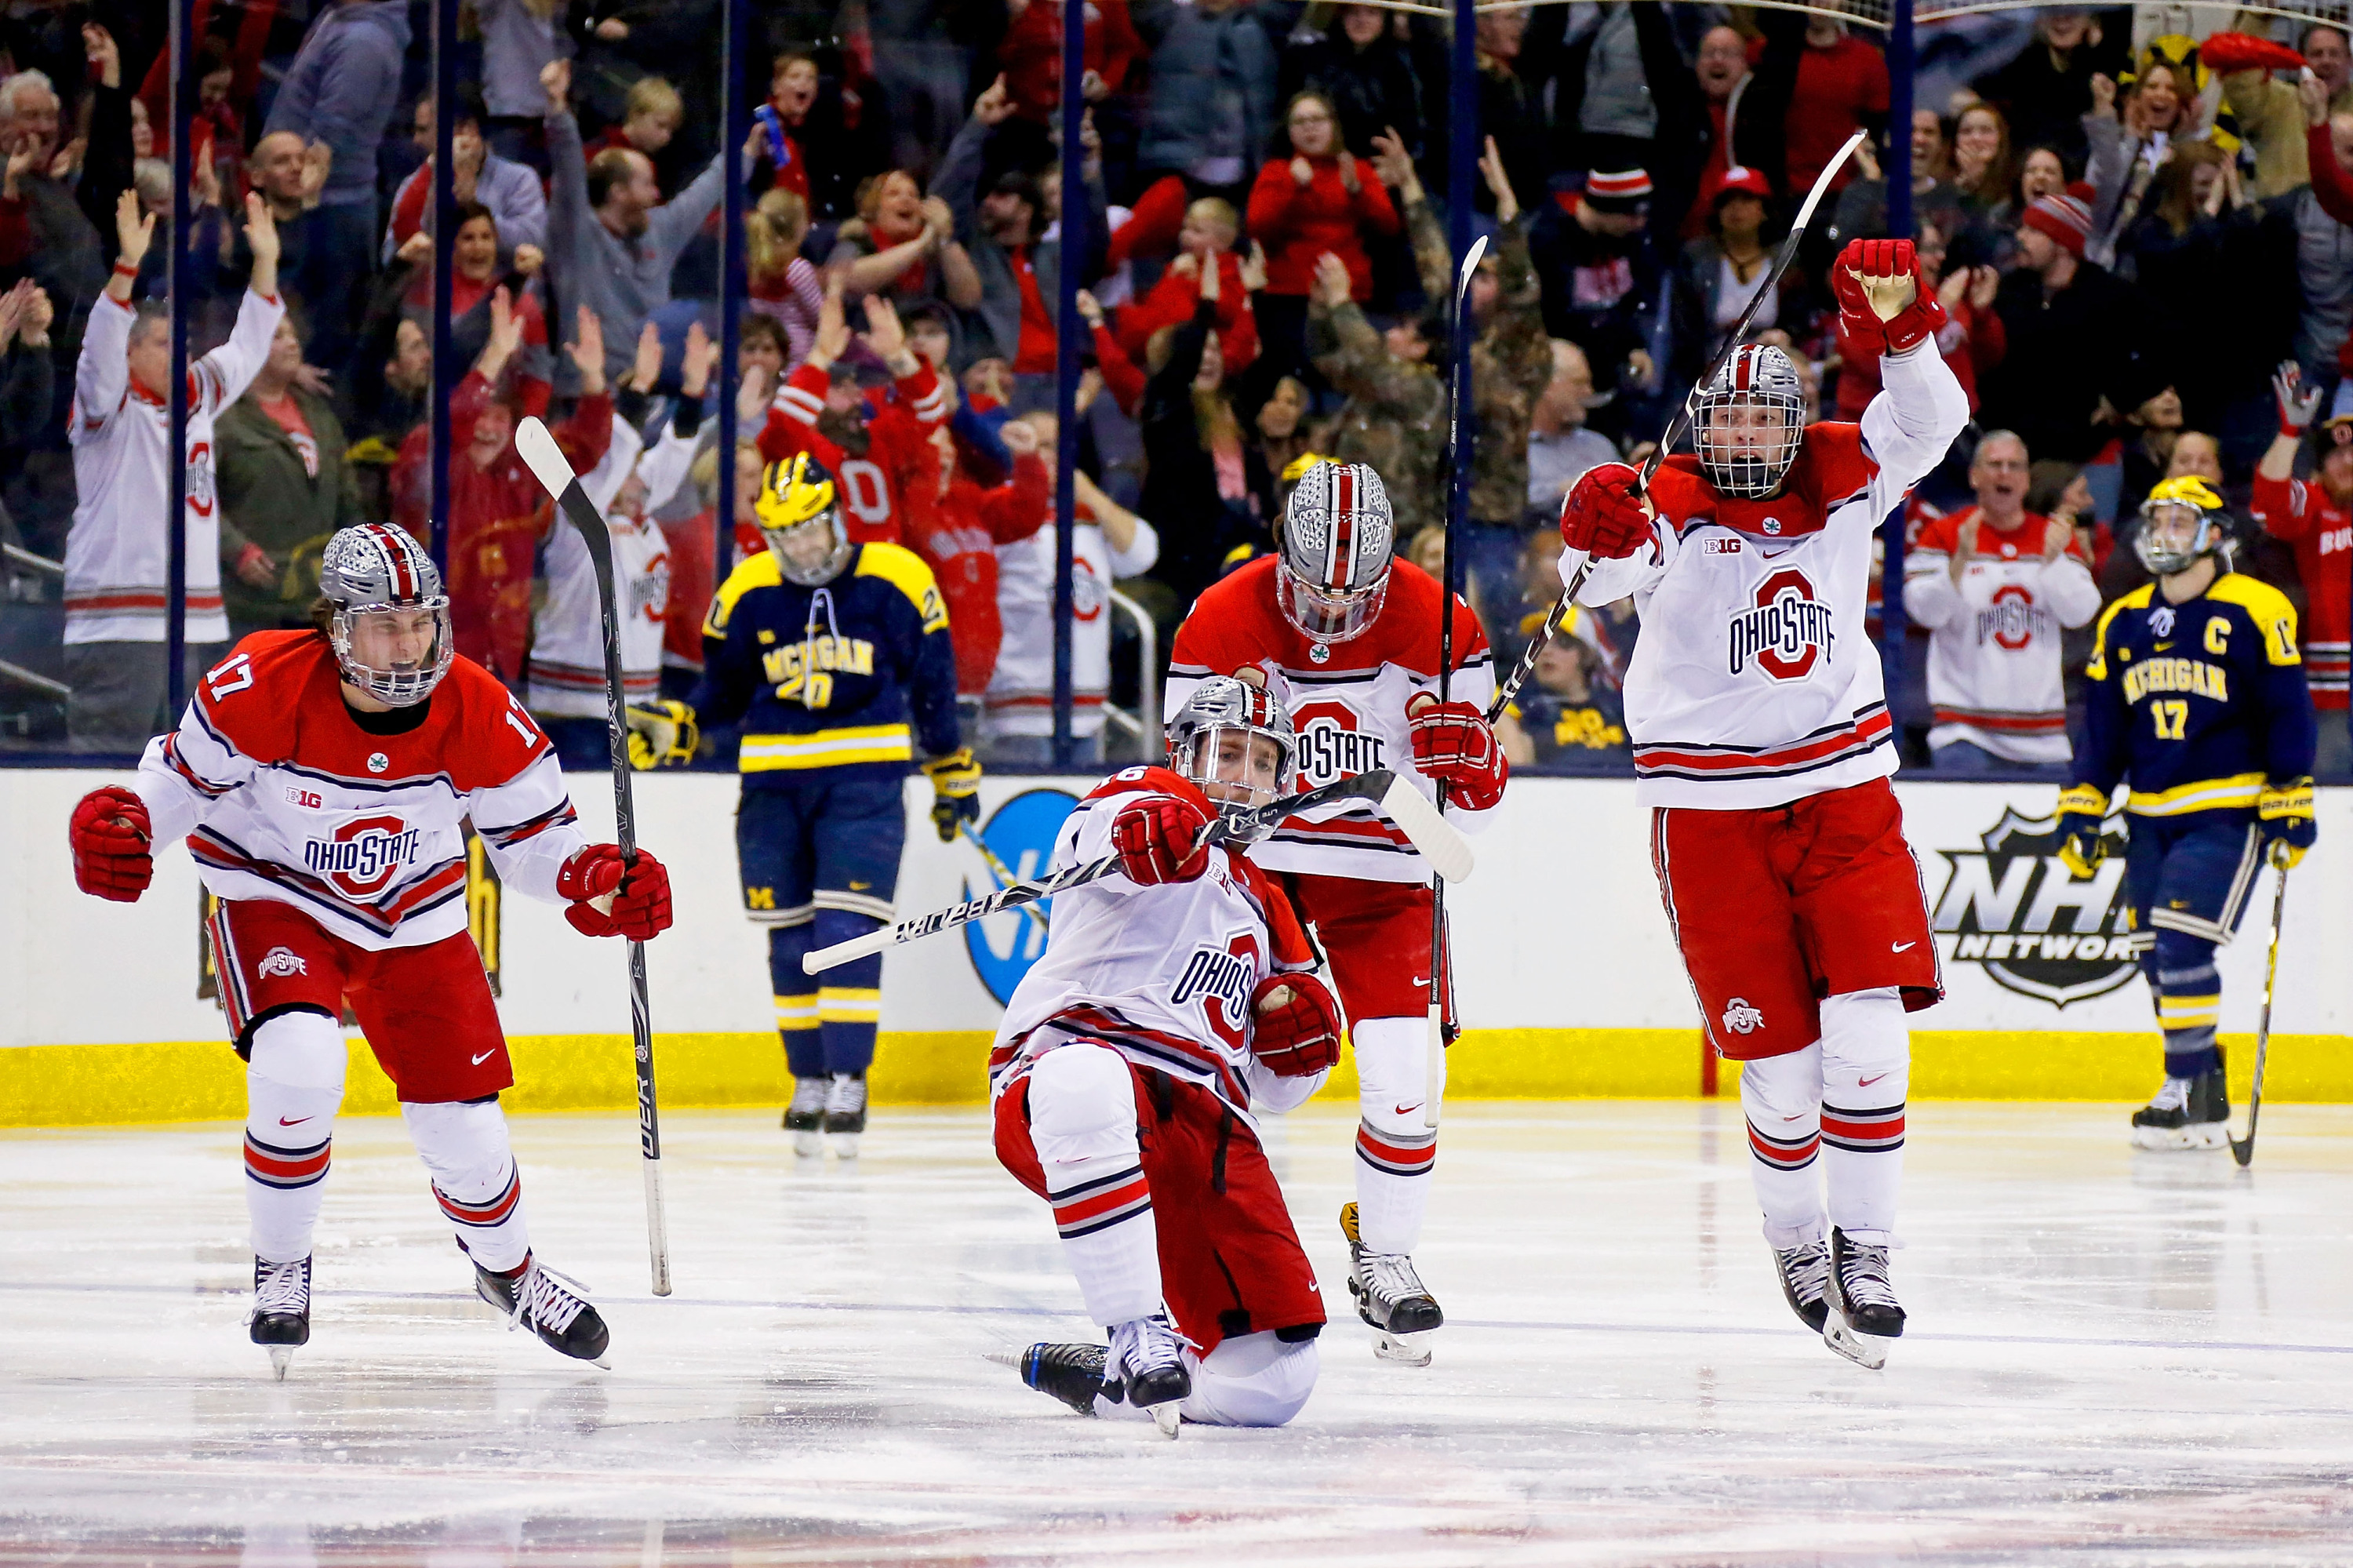 Ohio State plays Michigan in the Big 10 Hockey  Semifinals on Saturday, March 10, 2018 at Nationwide Arena in Columbus, Ohio. Ohio State defeated Michigan 3-2 in overtime.